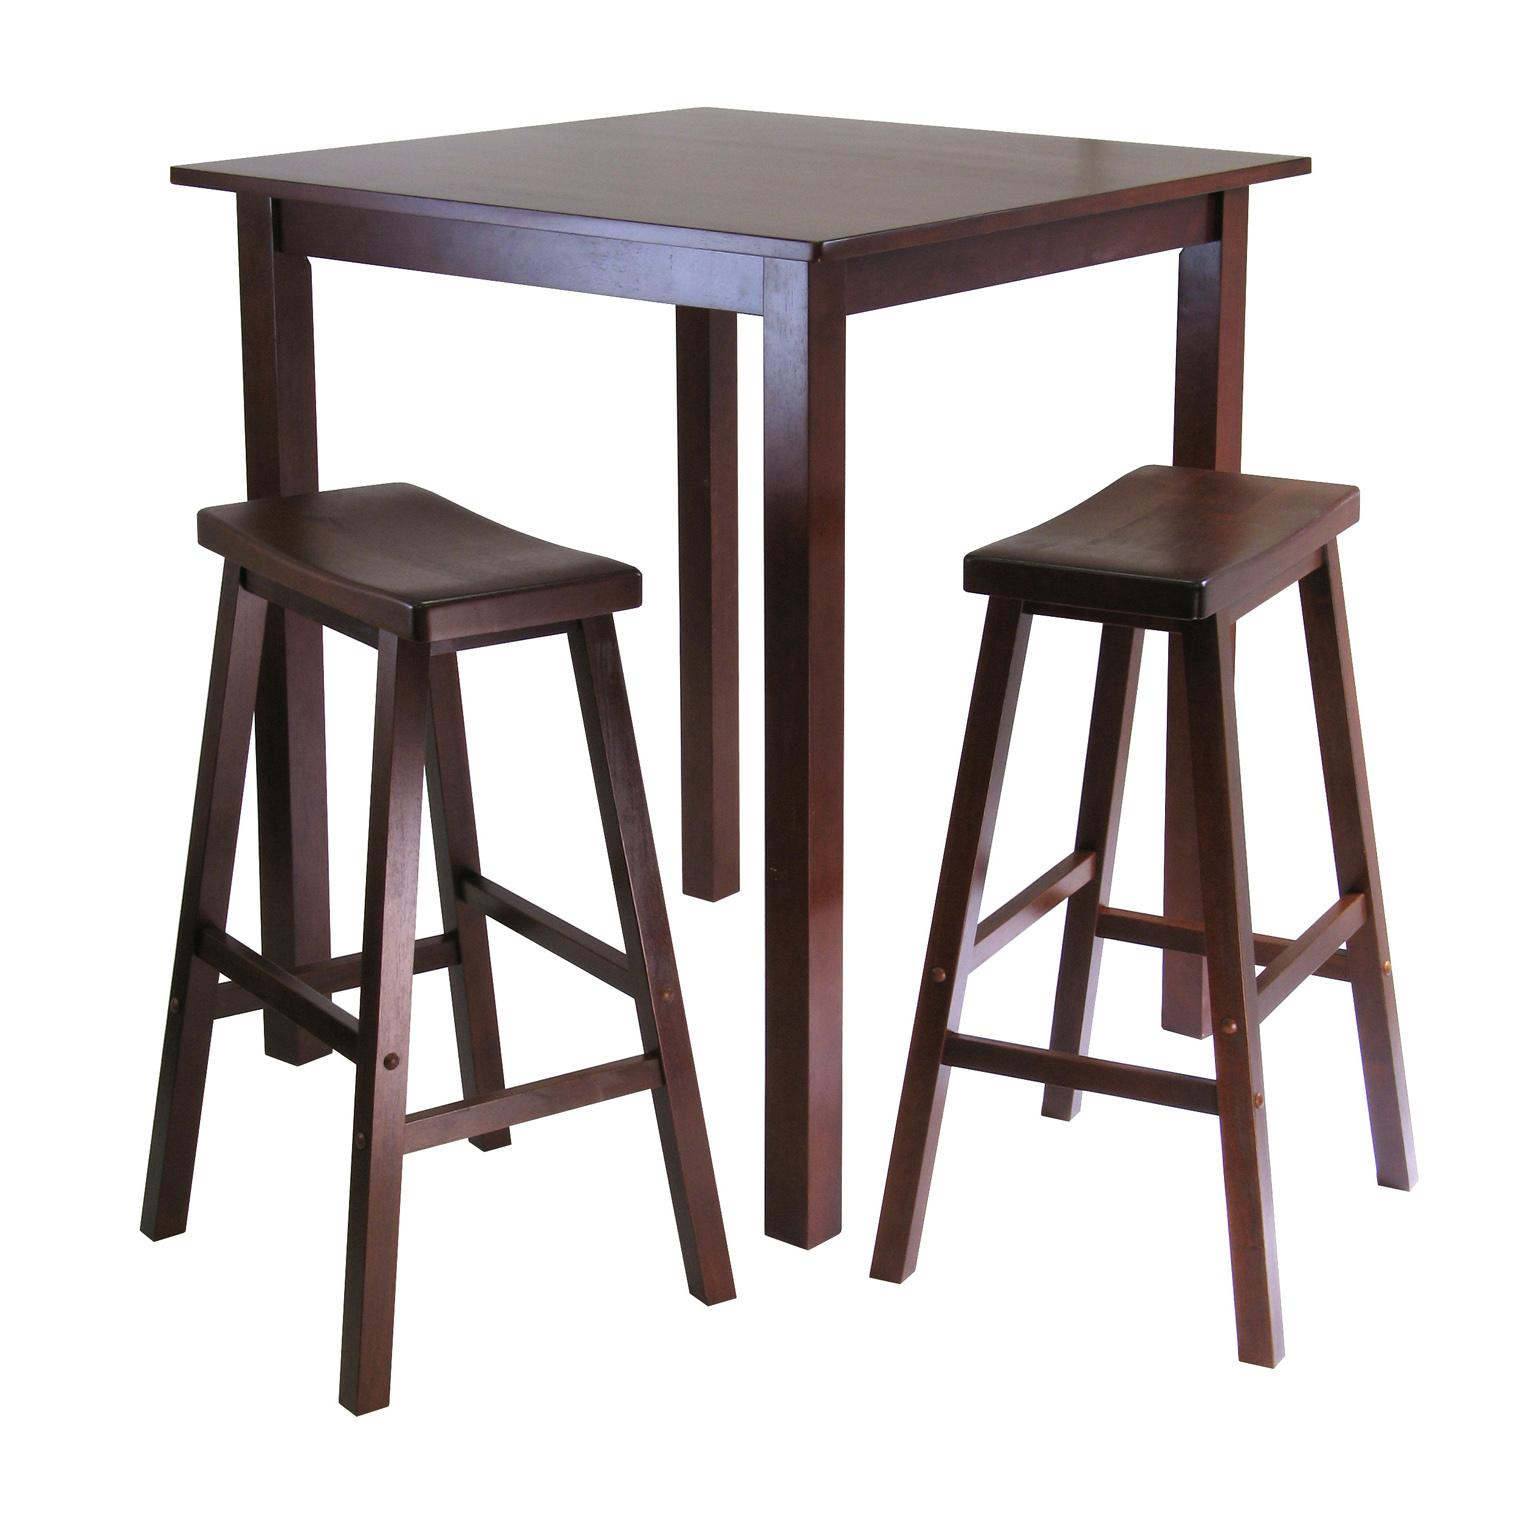 Bar Stools And Tables: Winsome Parking 3-pc Pub Set Dining Table